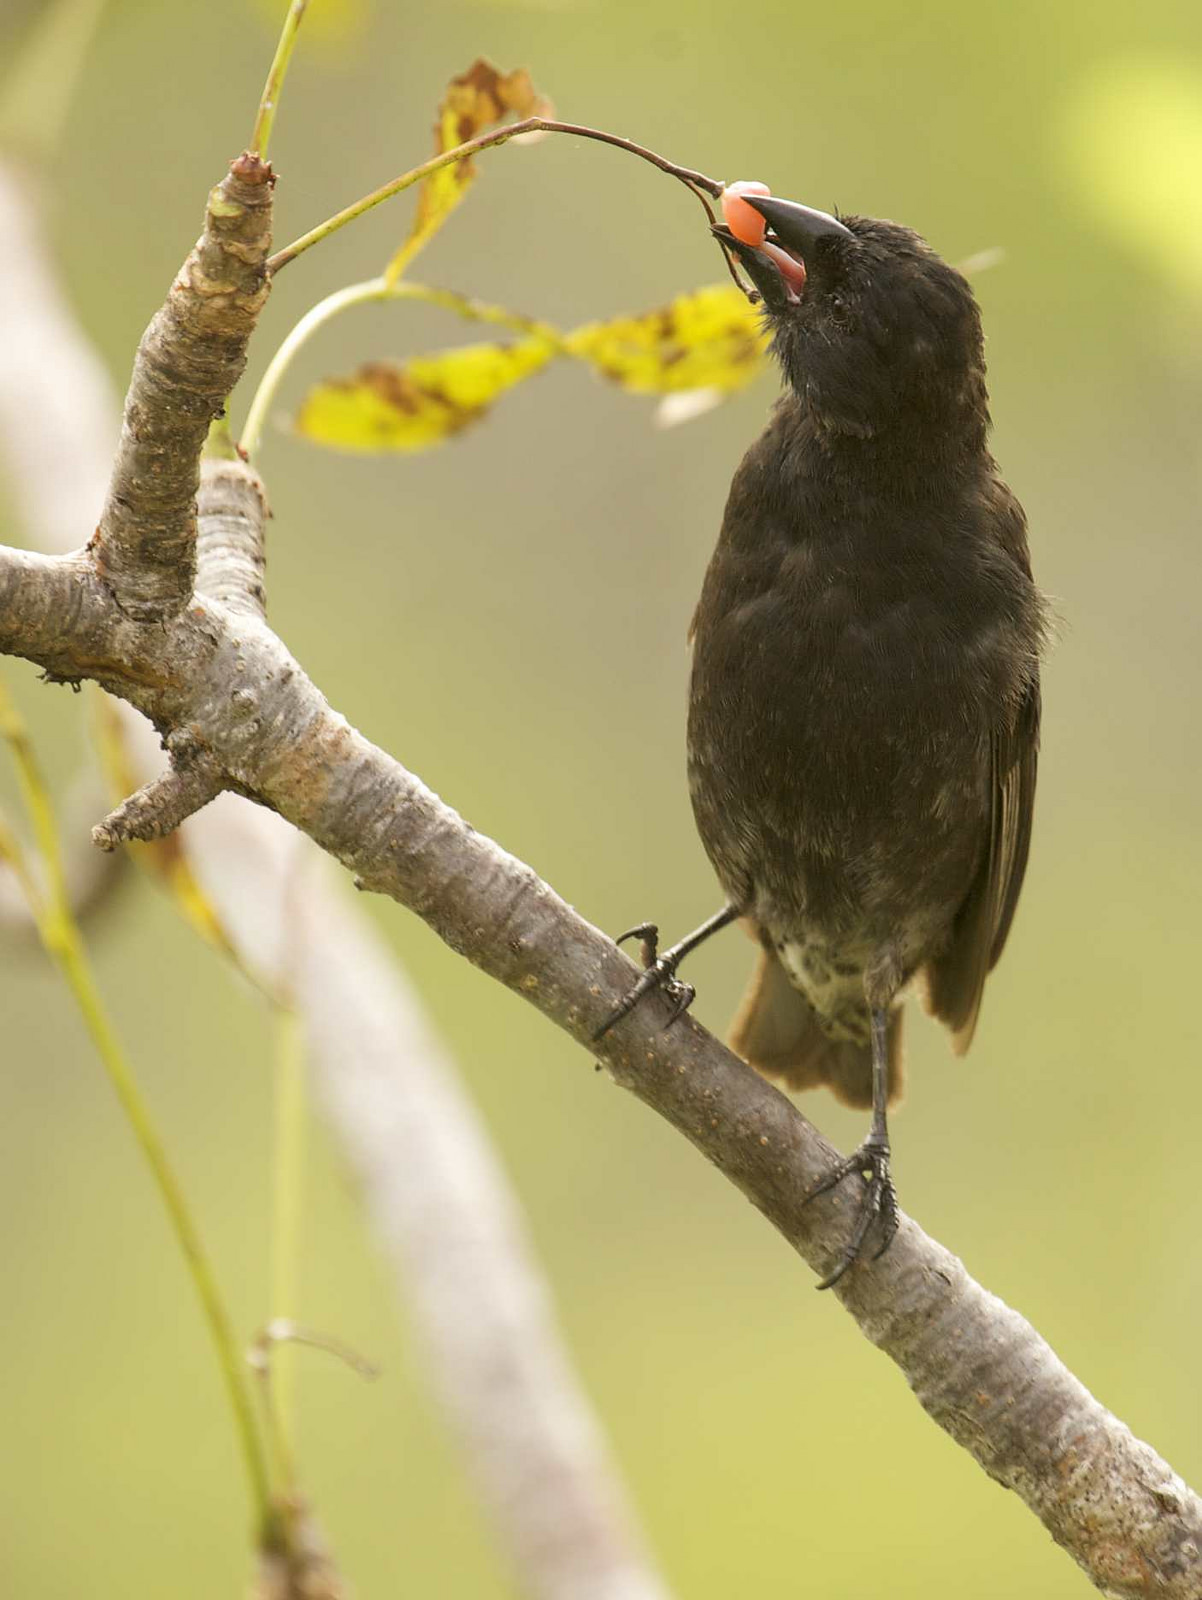 island conservation galapagos finch eating a berry